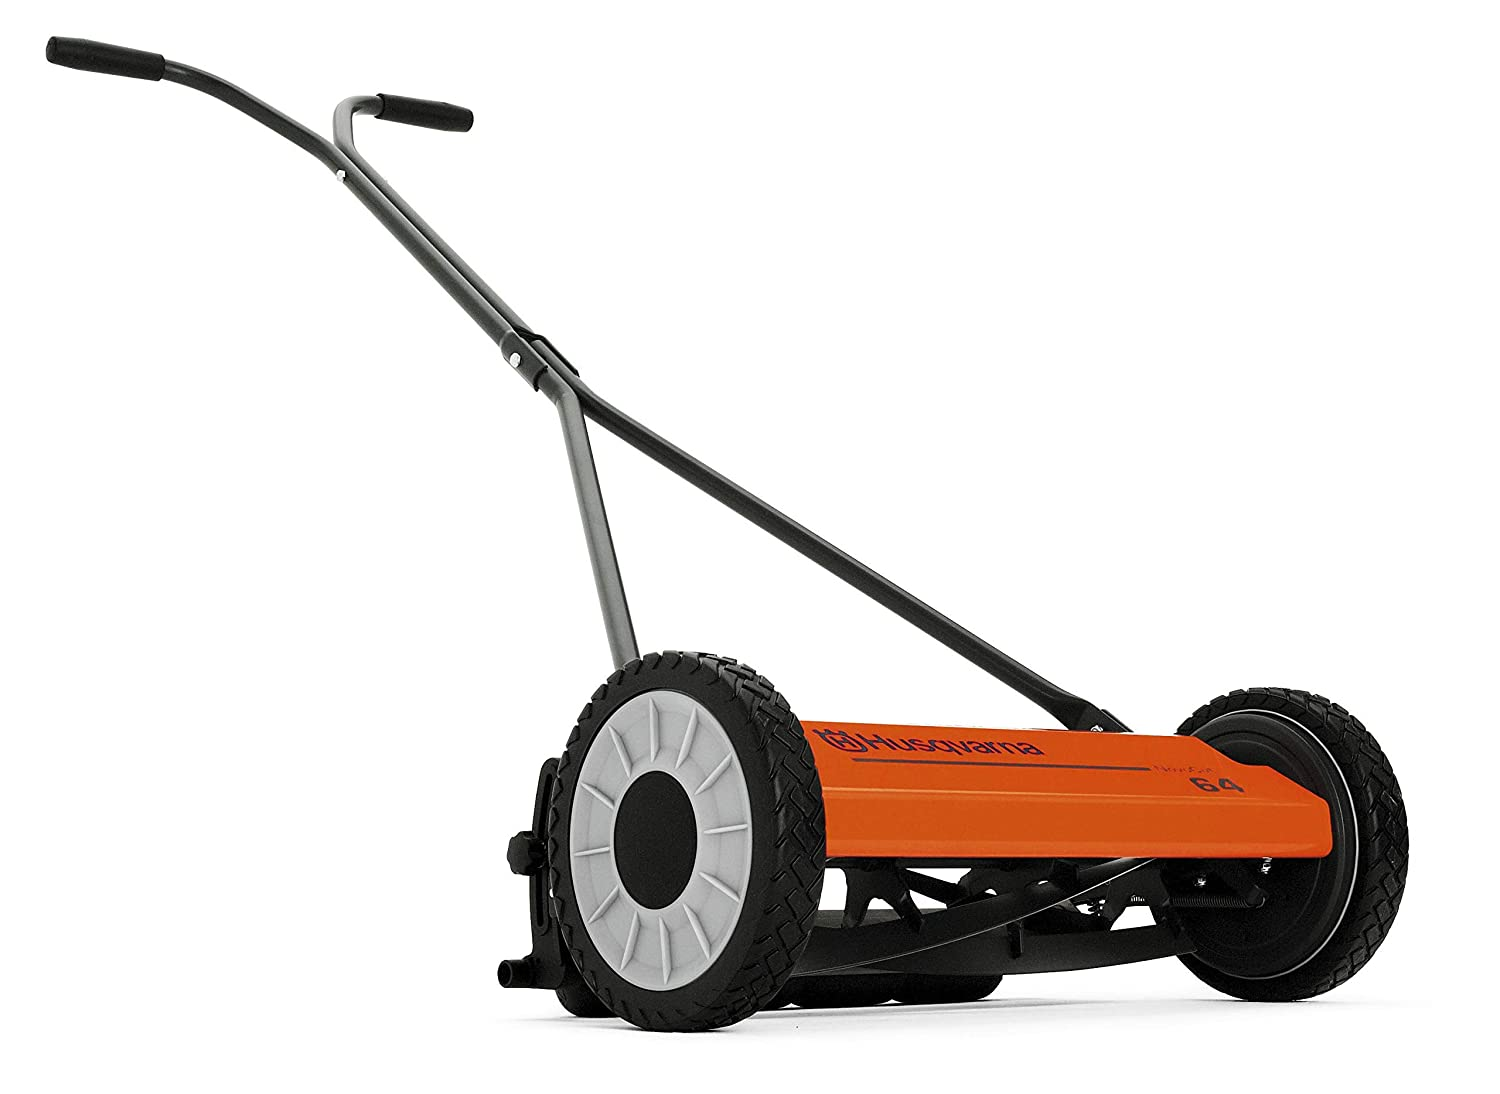 Husqvarna 64 (Push Carrete cortacésped: Amazon.es: Jardín